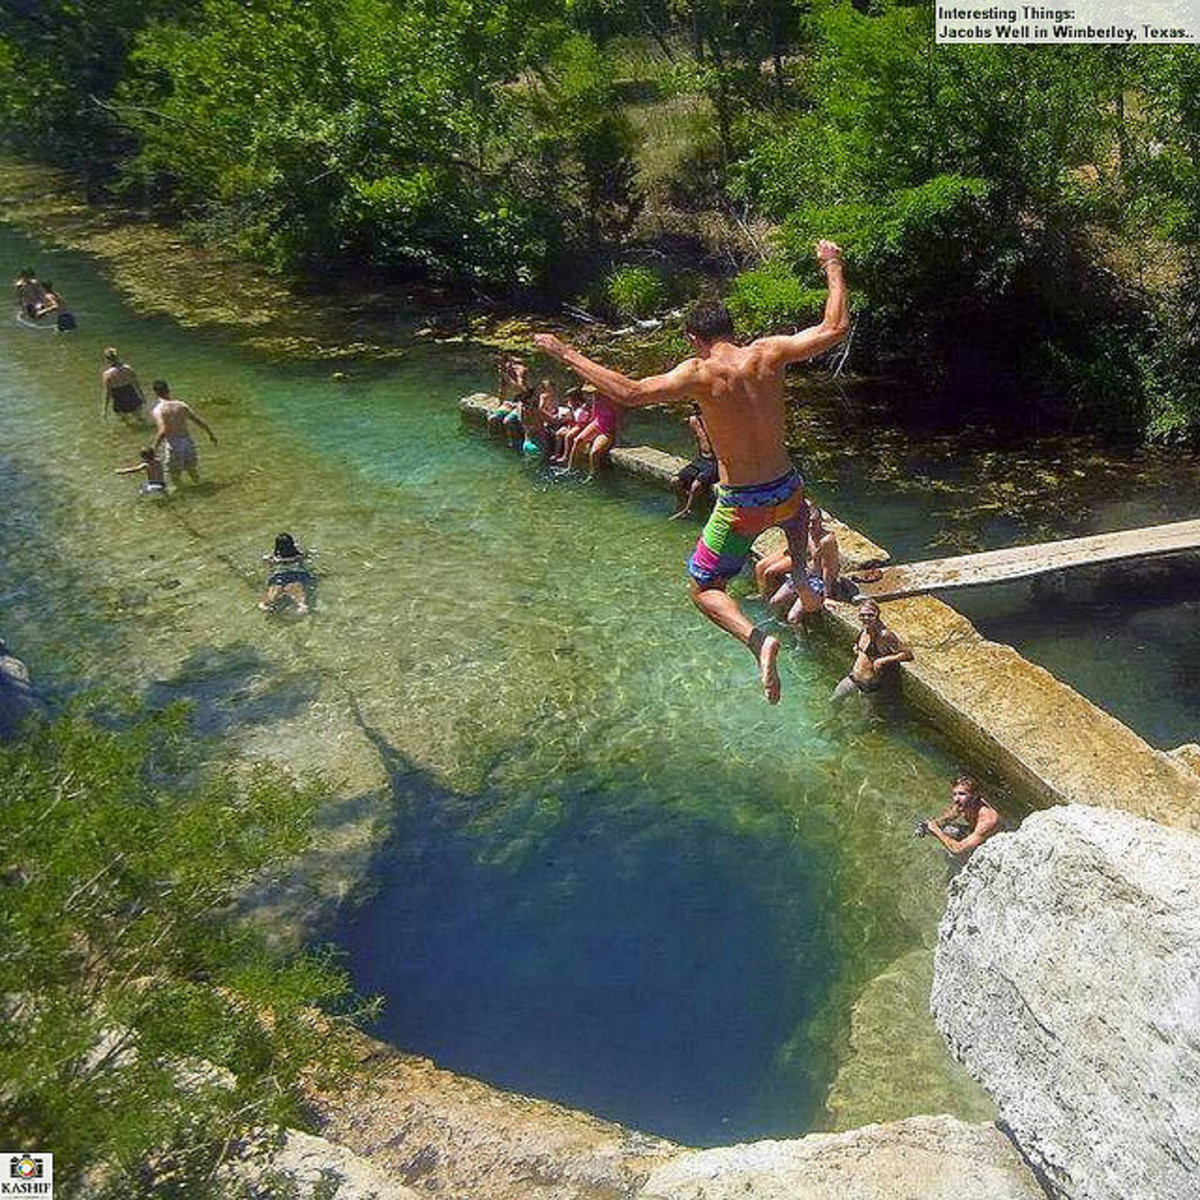 Jacob's well in Wimberley resort area.